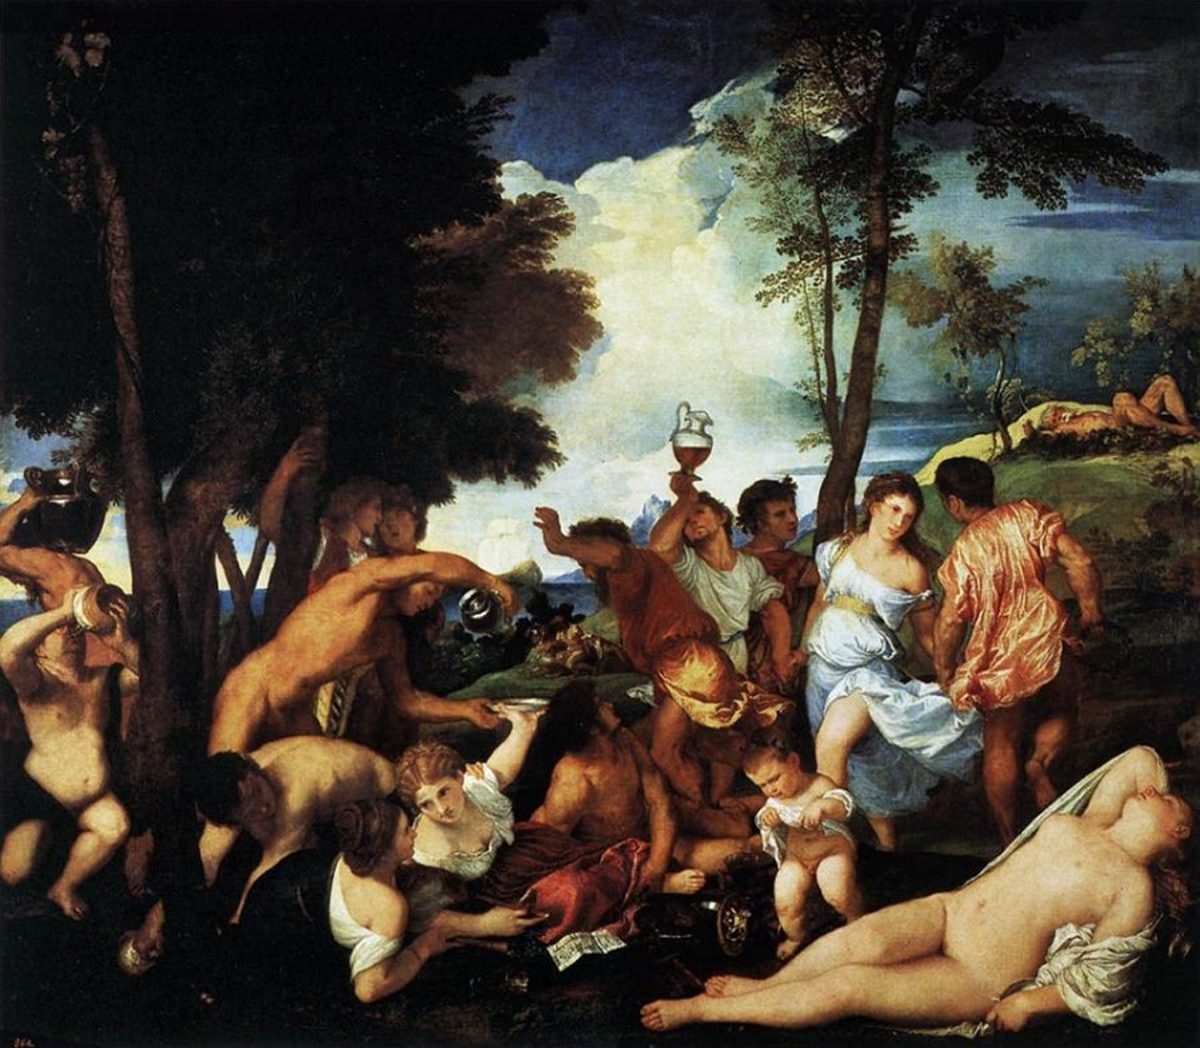 A depiction of a Bachannal in Ancient Rome. The festival involved lots of drinking and orgies.